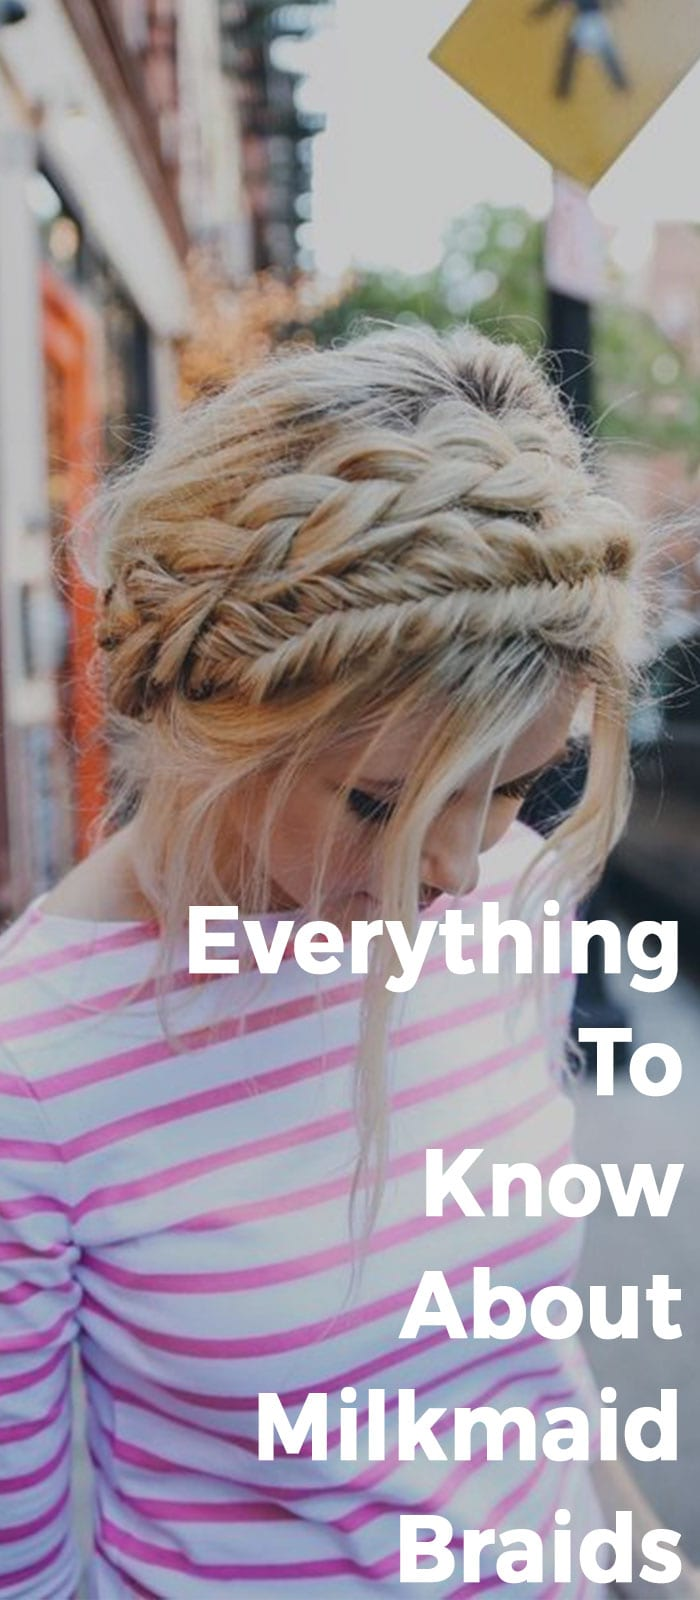 Everything To Know About Milkmaid Braids